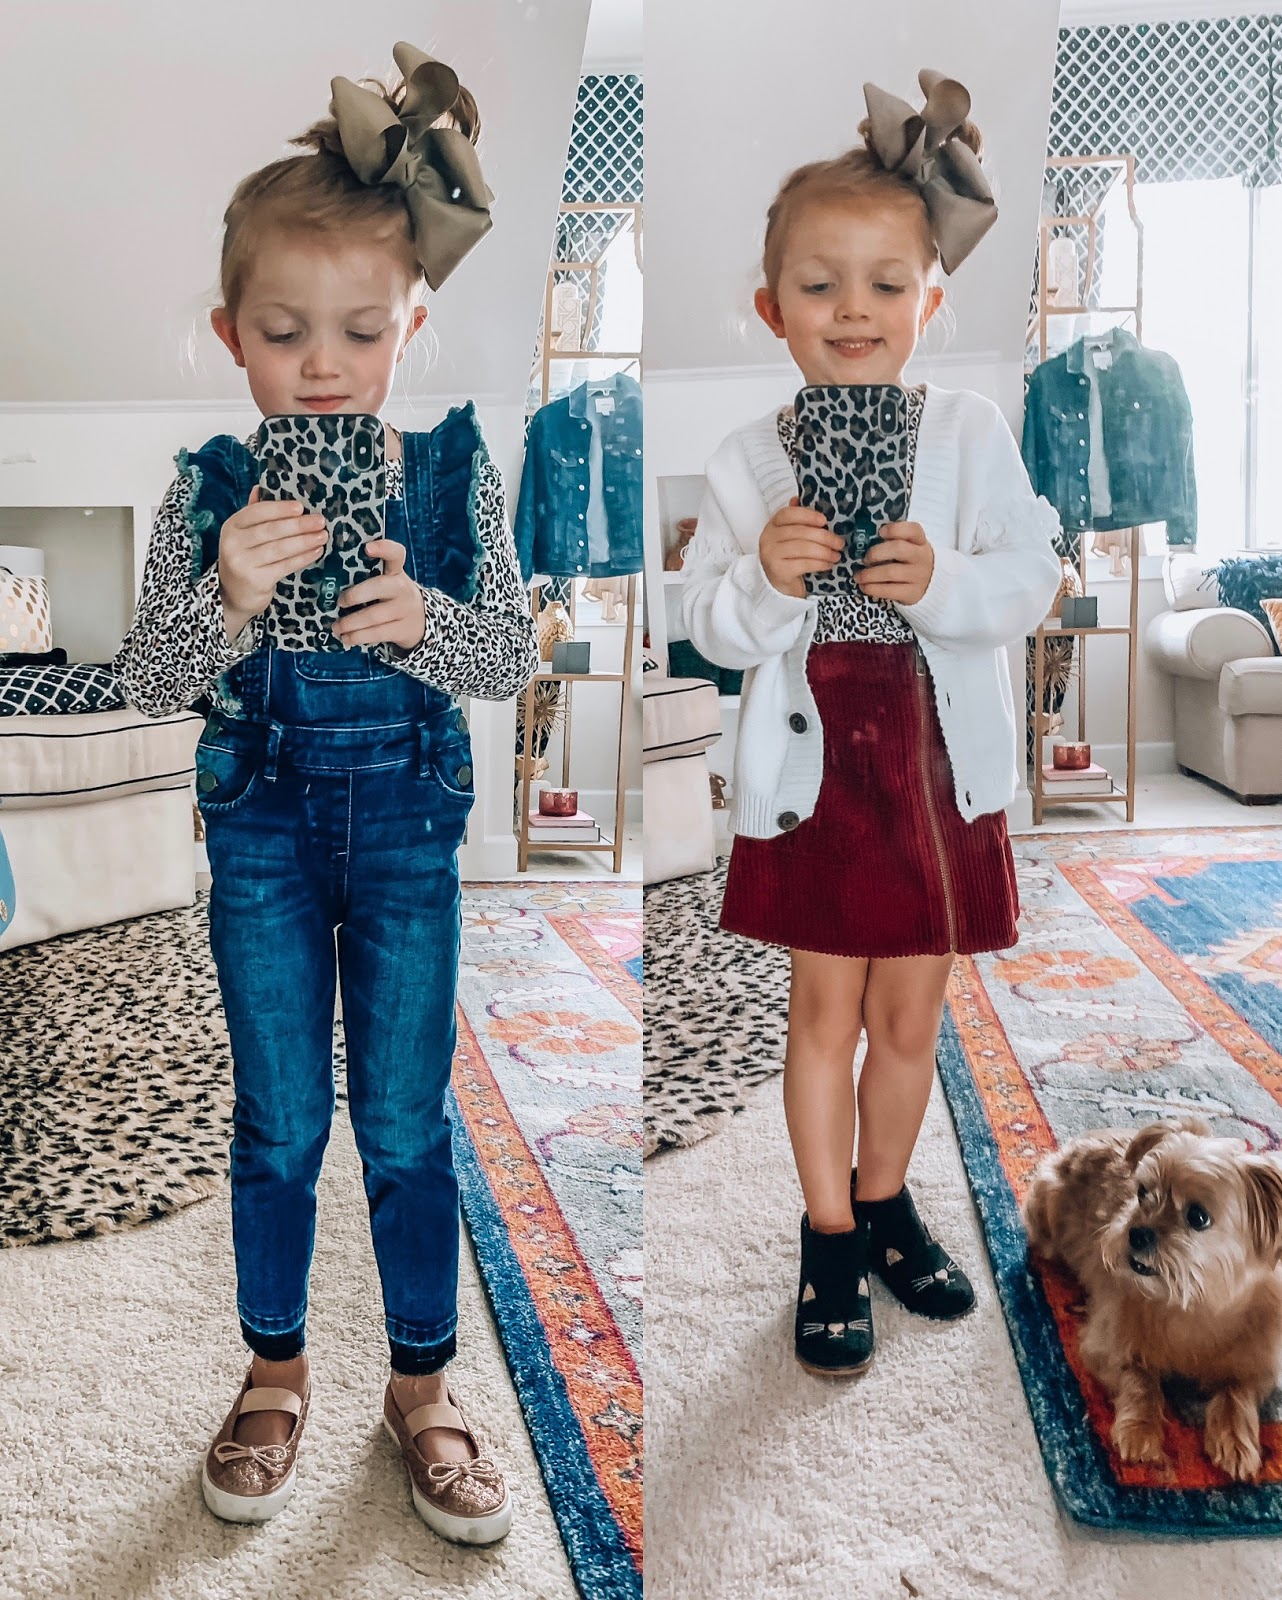 Target Fall 2019 Finds for Kids - Madeline's Picks - Ruffle Overalls, Cord Skirt, Fringe Sleeve Cardigan - Something Delightful Blog #Kidsfallfashion